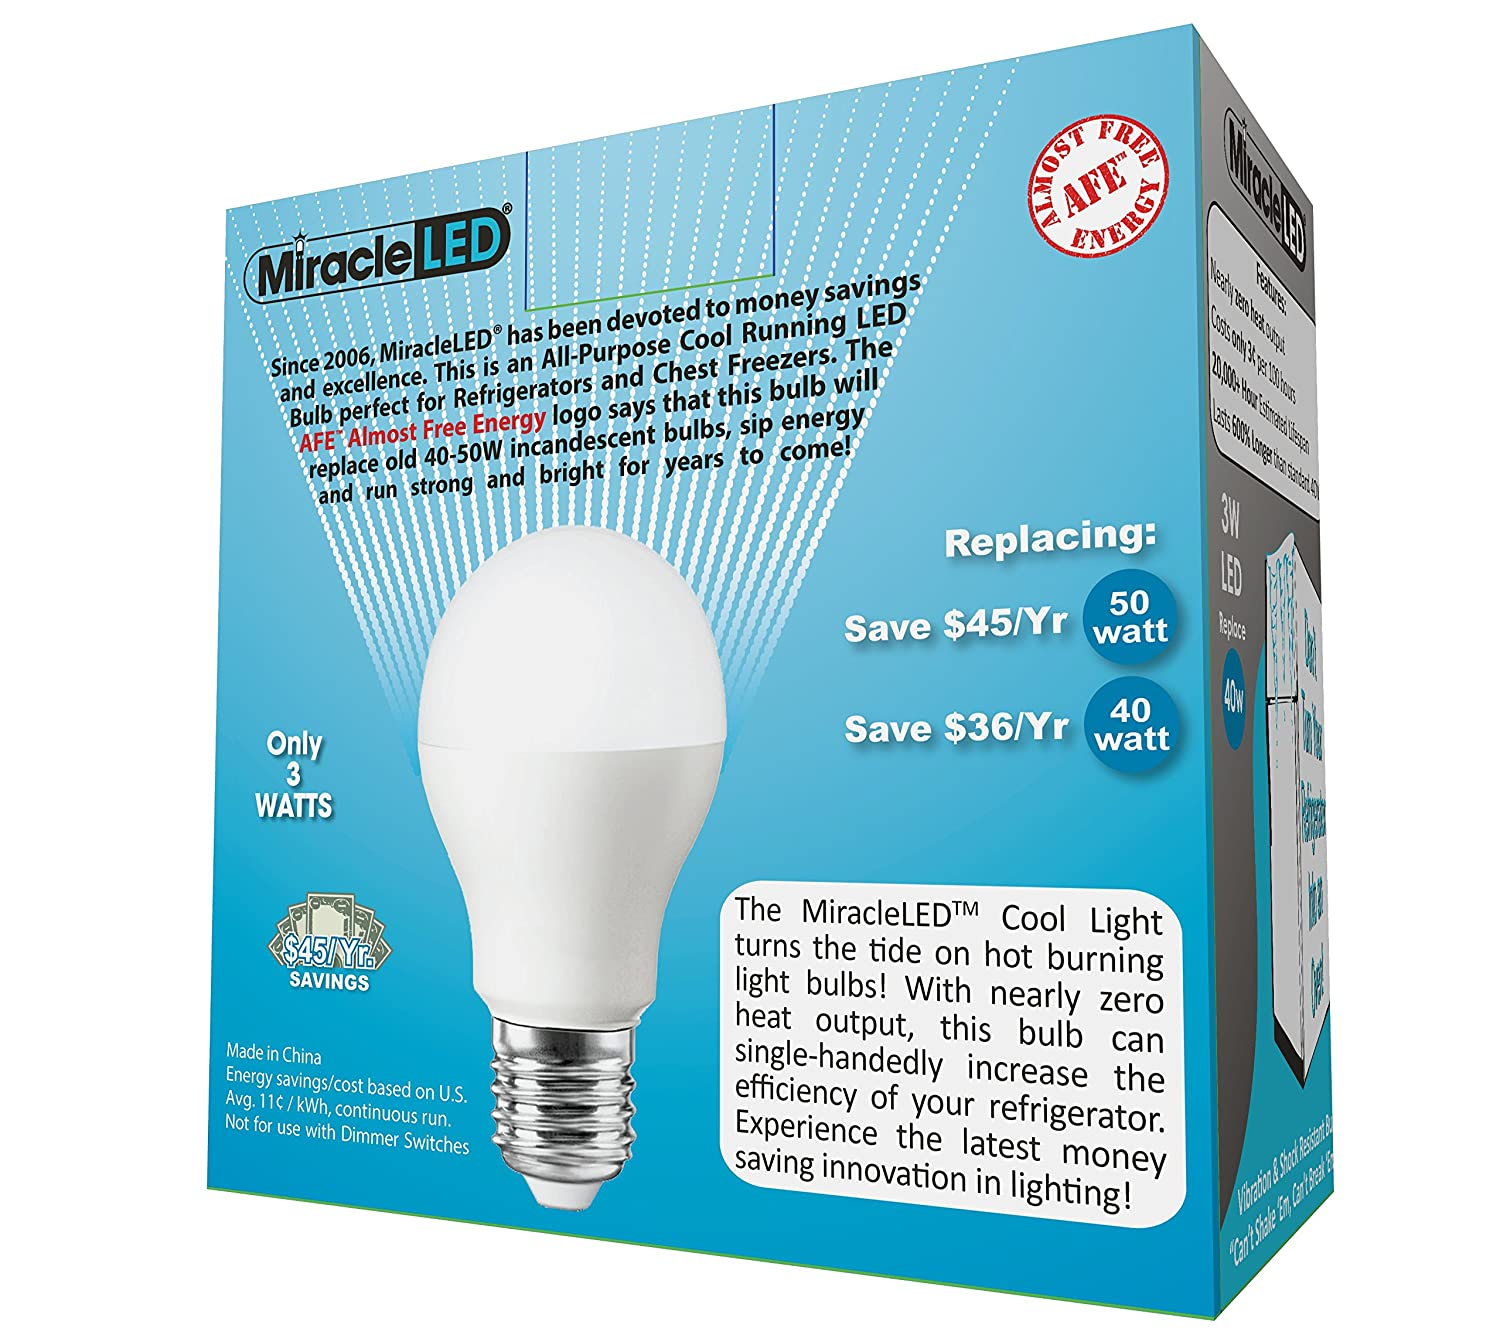 Miracle Led 604724 3 Watt Refrigerator And Freezer Light Long Life Parallel Circuit The Lightbulbs Will Not If Switch Does Energy Saver Bulb Cool White 2 Pack